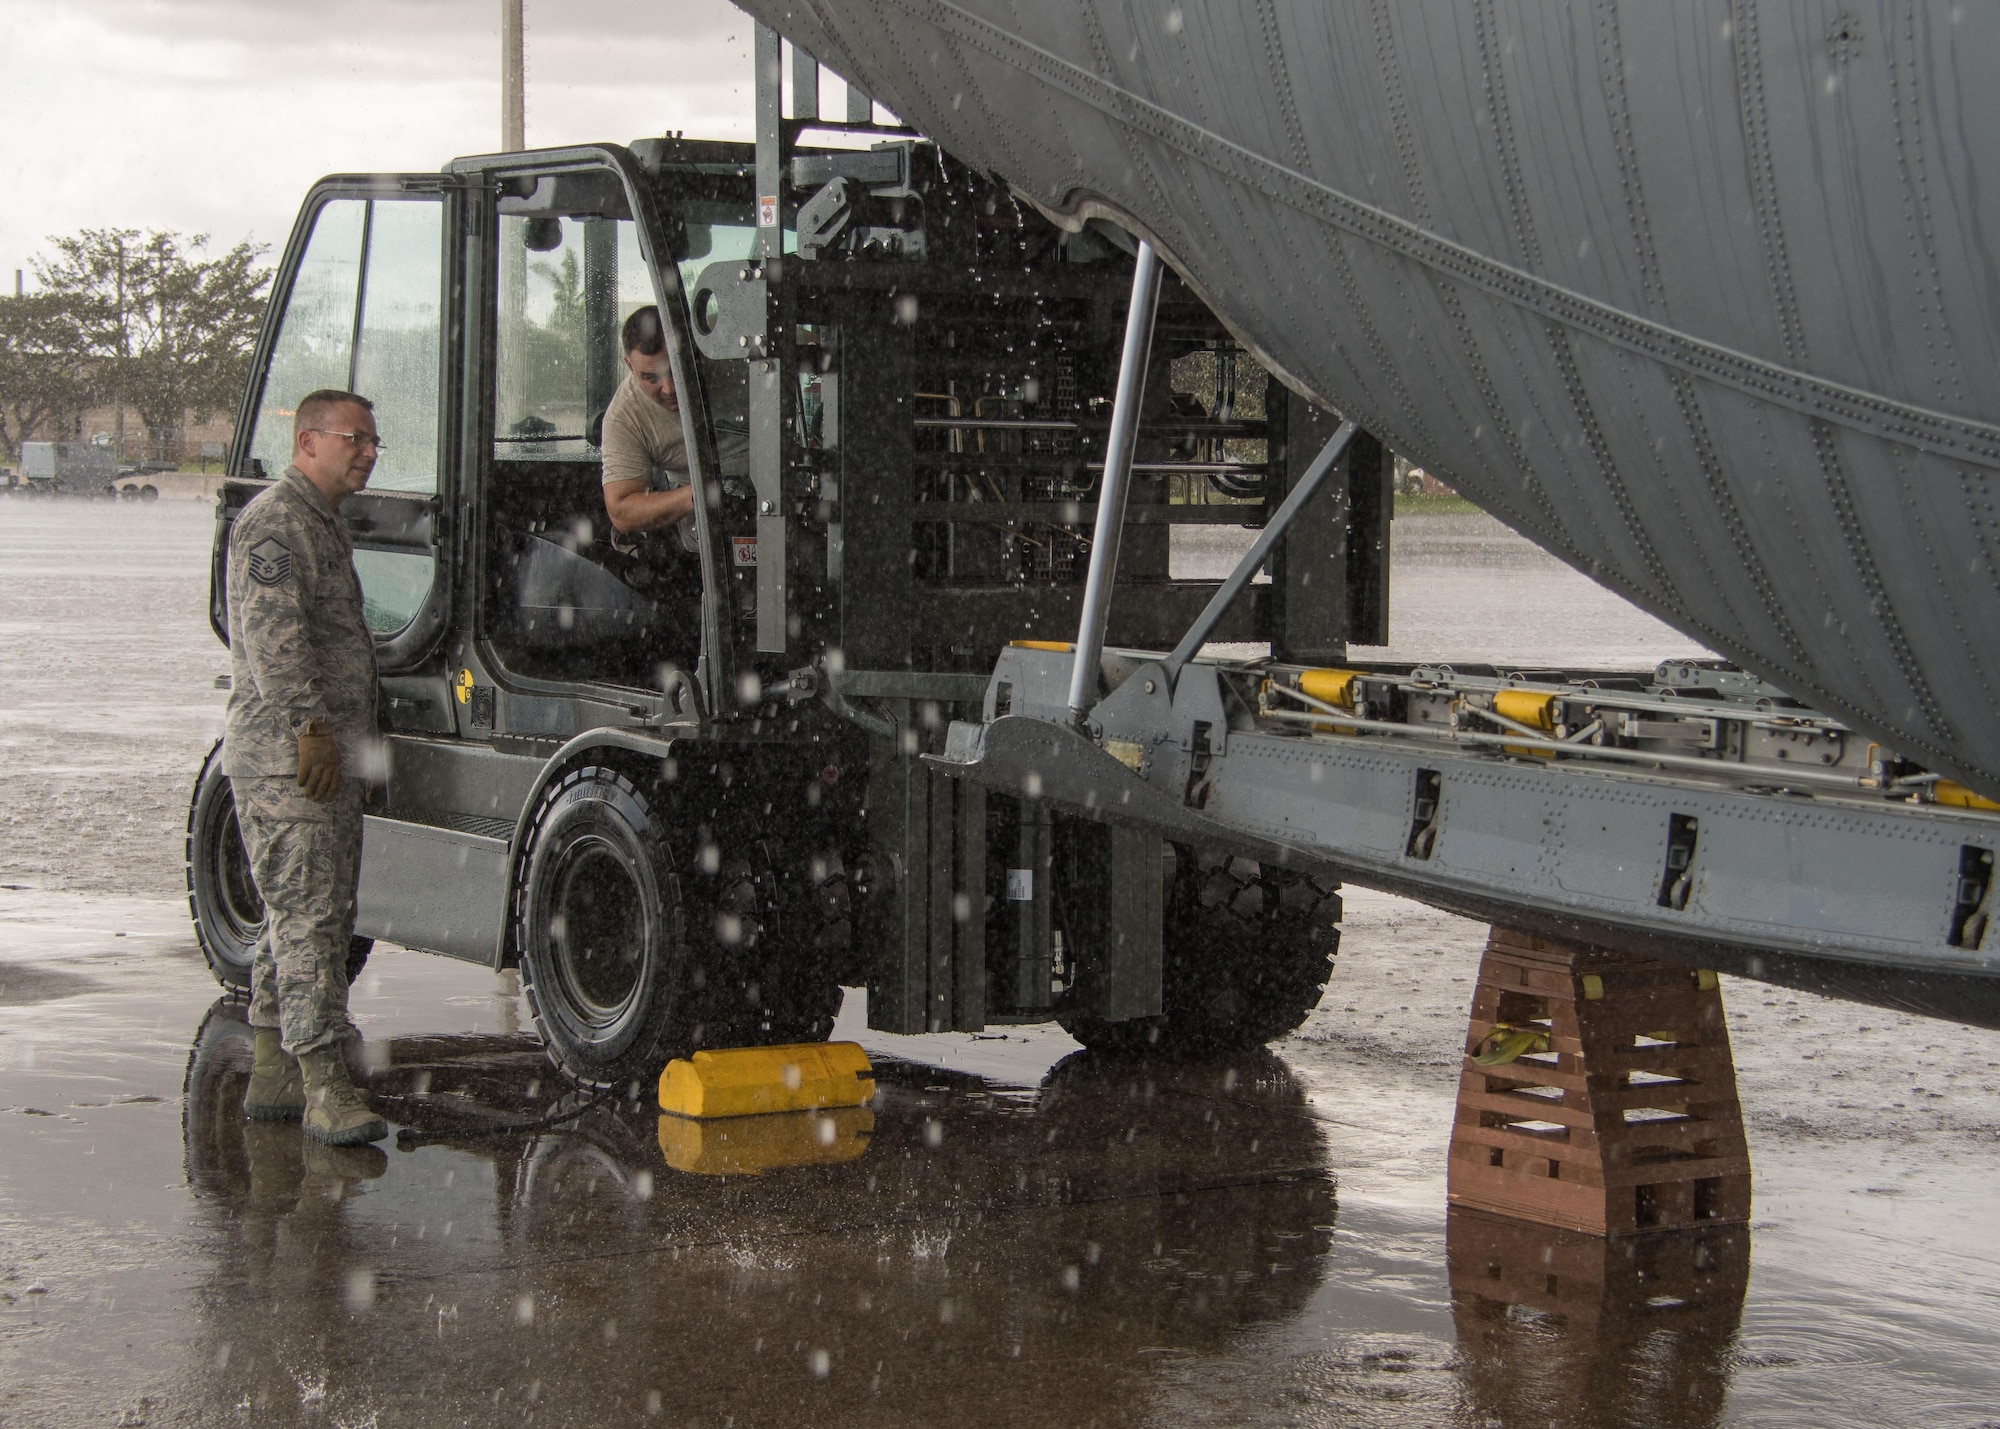 Aerial porters offloads cargo from a C-130H3 Hercules at Homestead Air Reserve Base, Fla. Sept. 12, 2017. 94th Airlift Wing C-130s and aircrews provided airlift support as part of the Air Force Reserve's relief efforts following Hurricane Irma. (U.S. Air Force photo/Staff Sgt. Andrew Park)